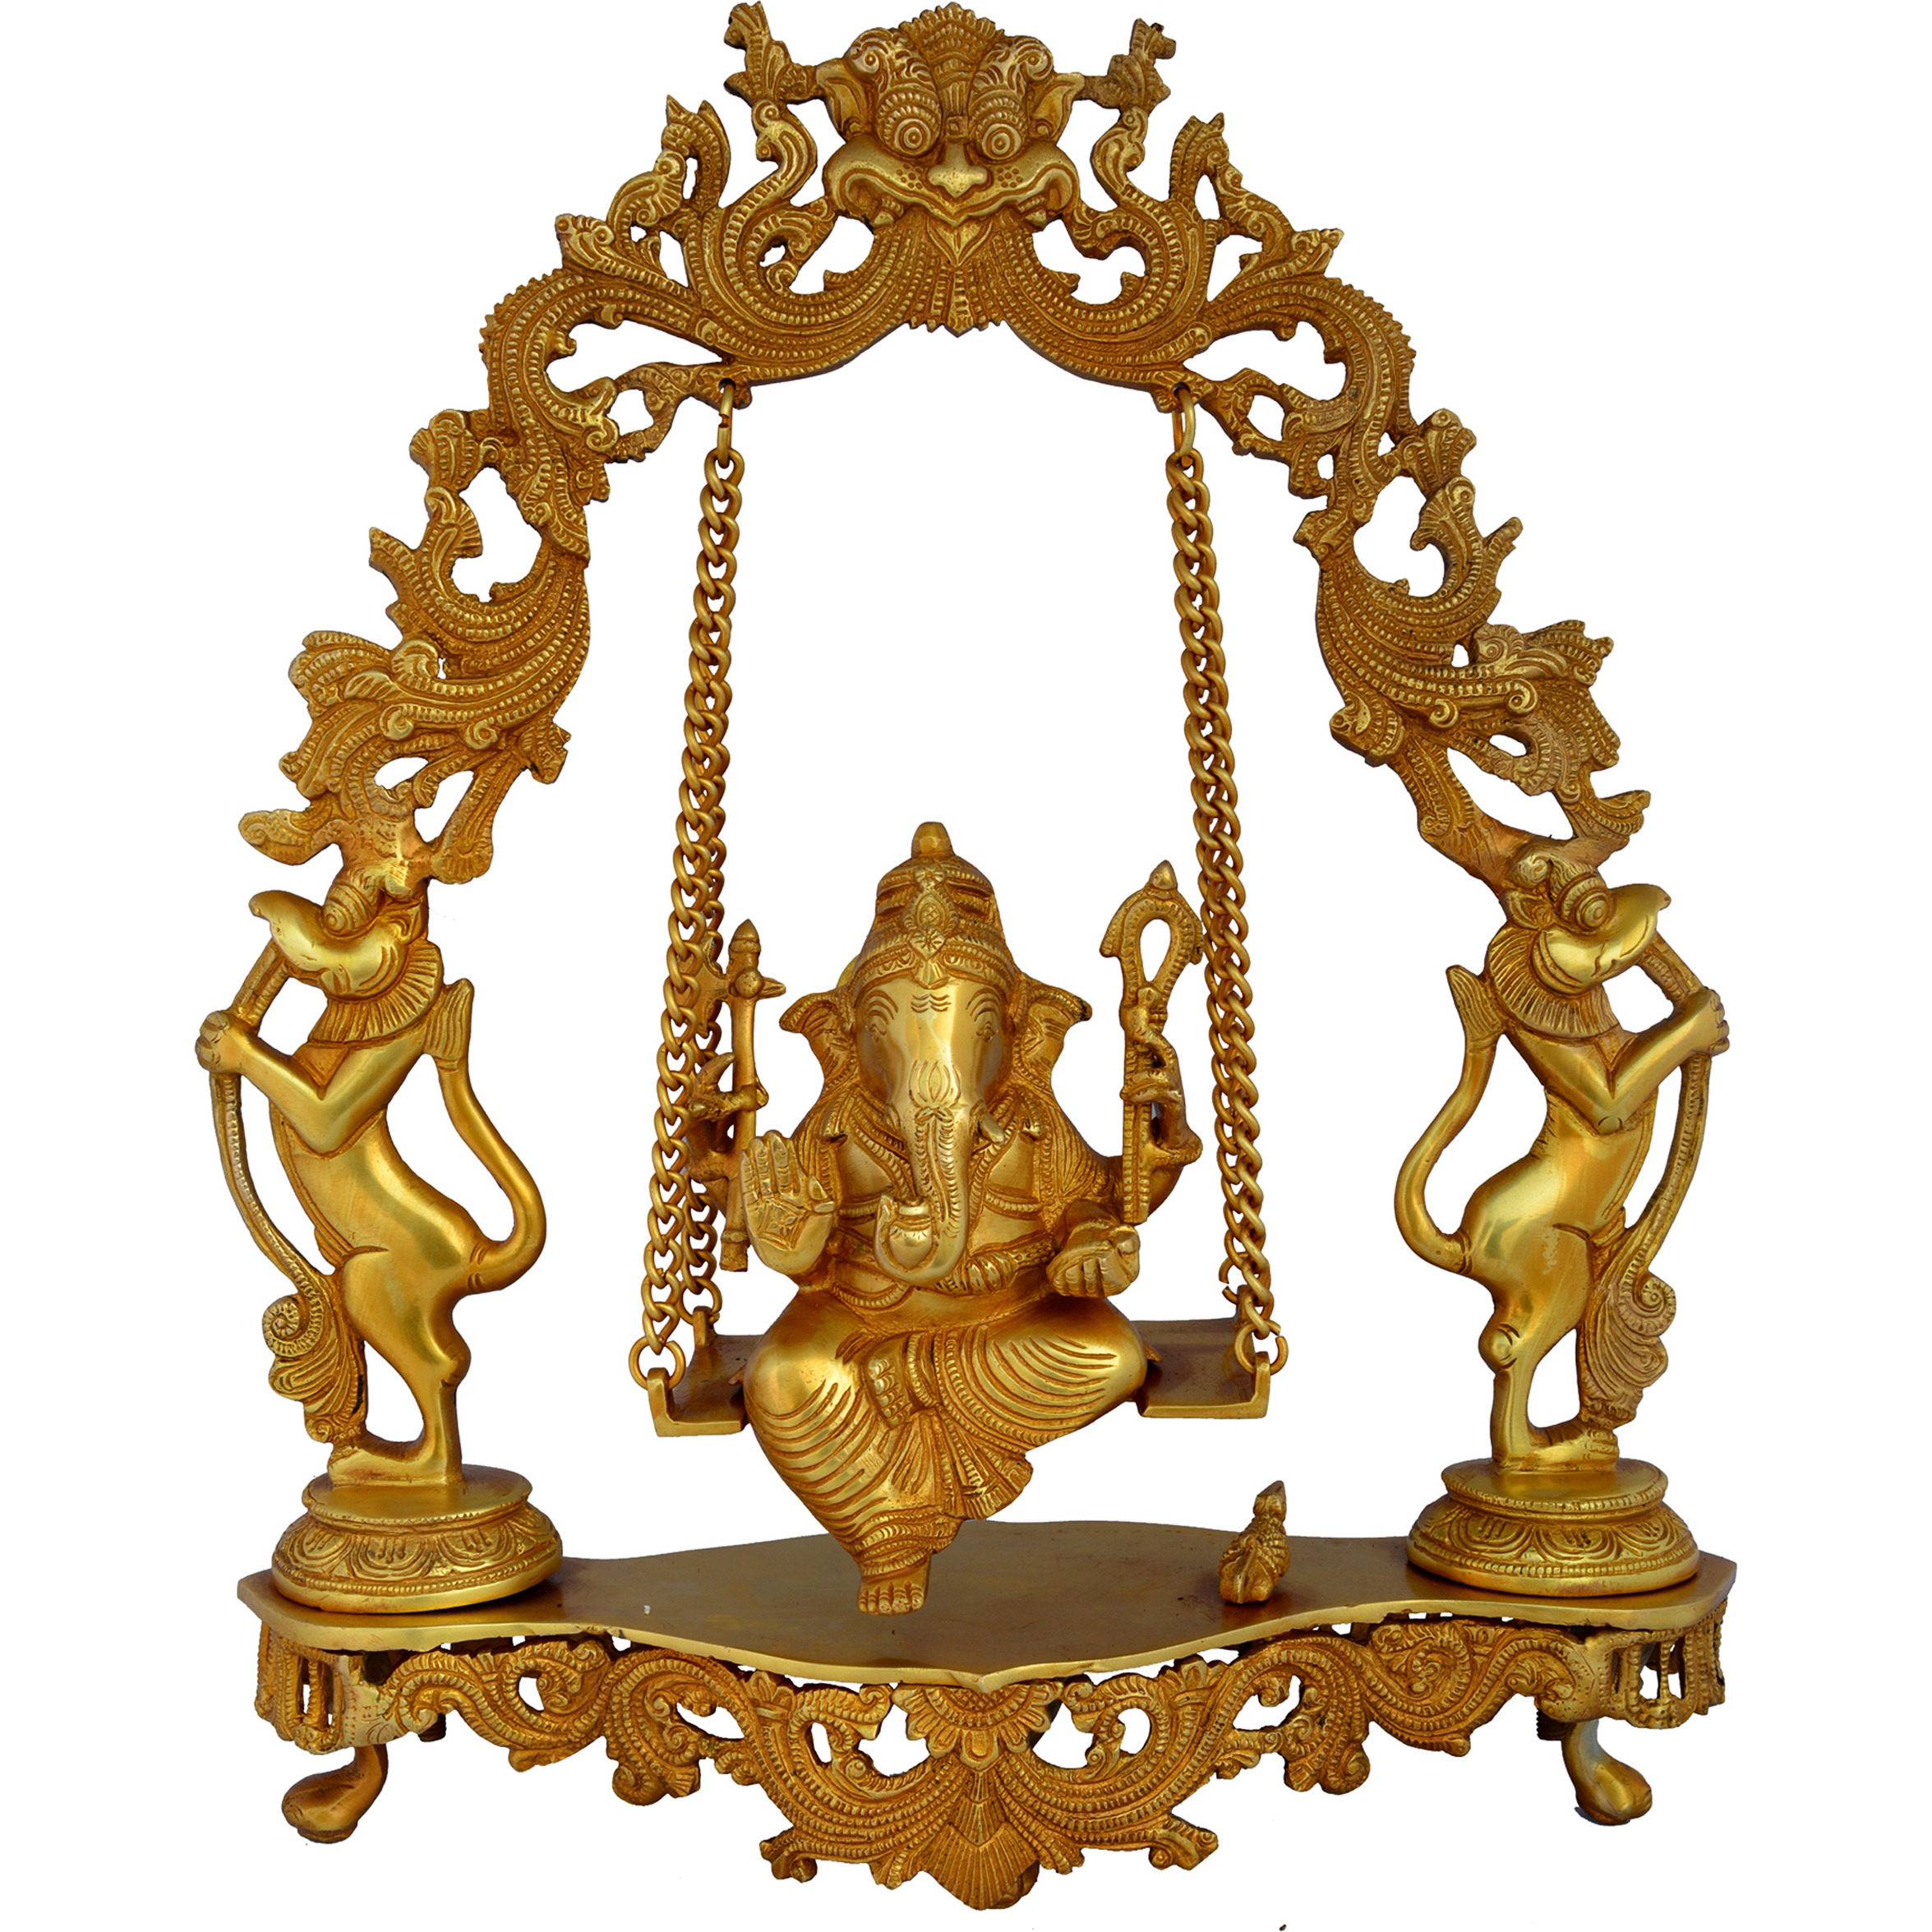 Aakrati Ganesh Sitting On Carved Swing Having Yali Face Brass Statue Yellow